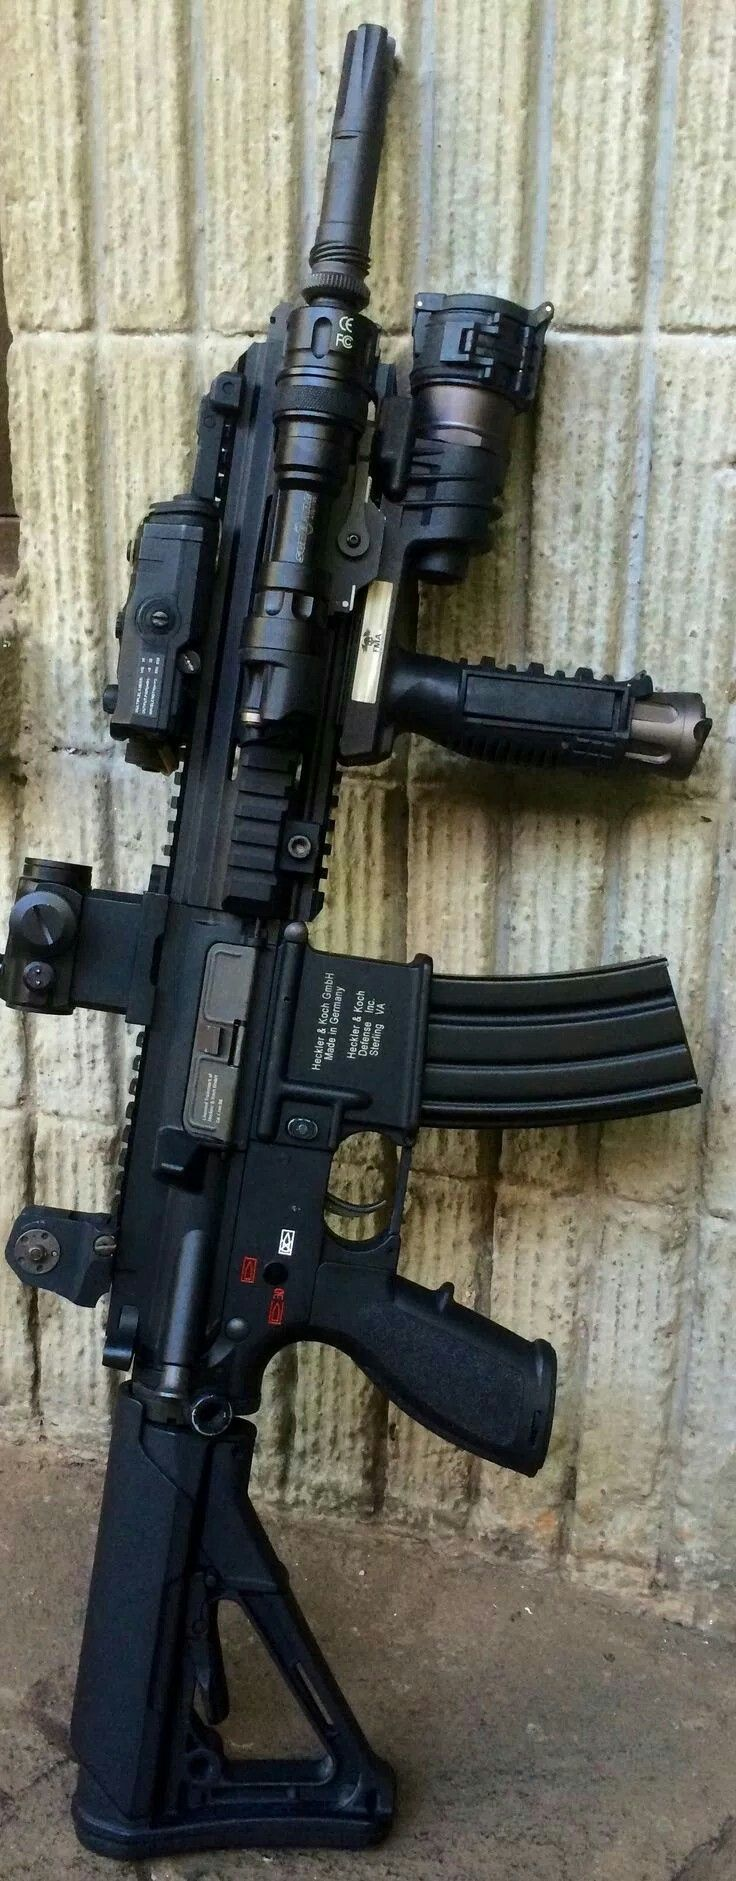 HK MR556 the Holy Grail of m4 type carbines!